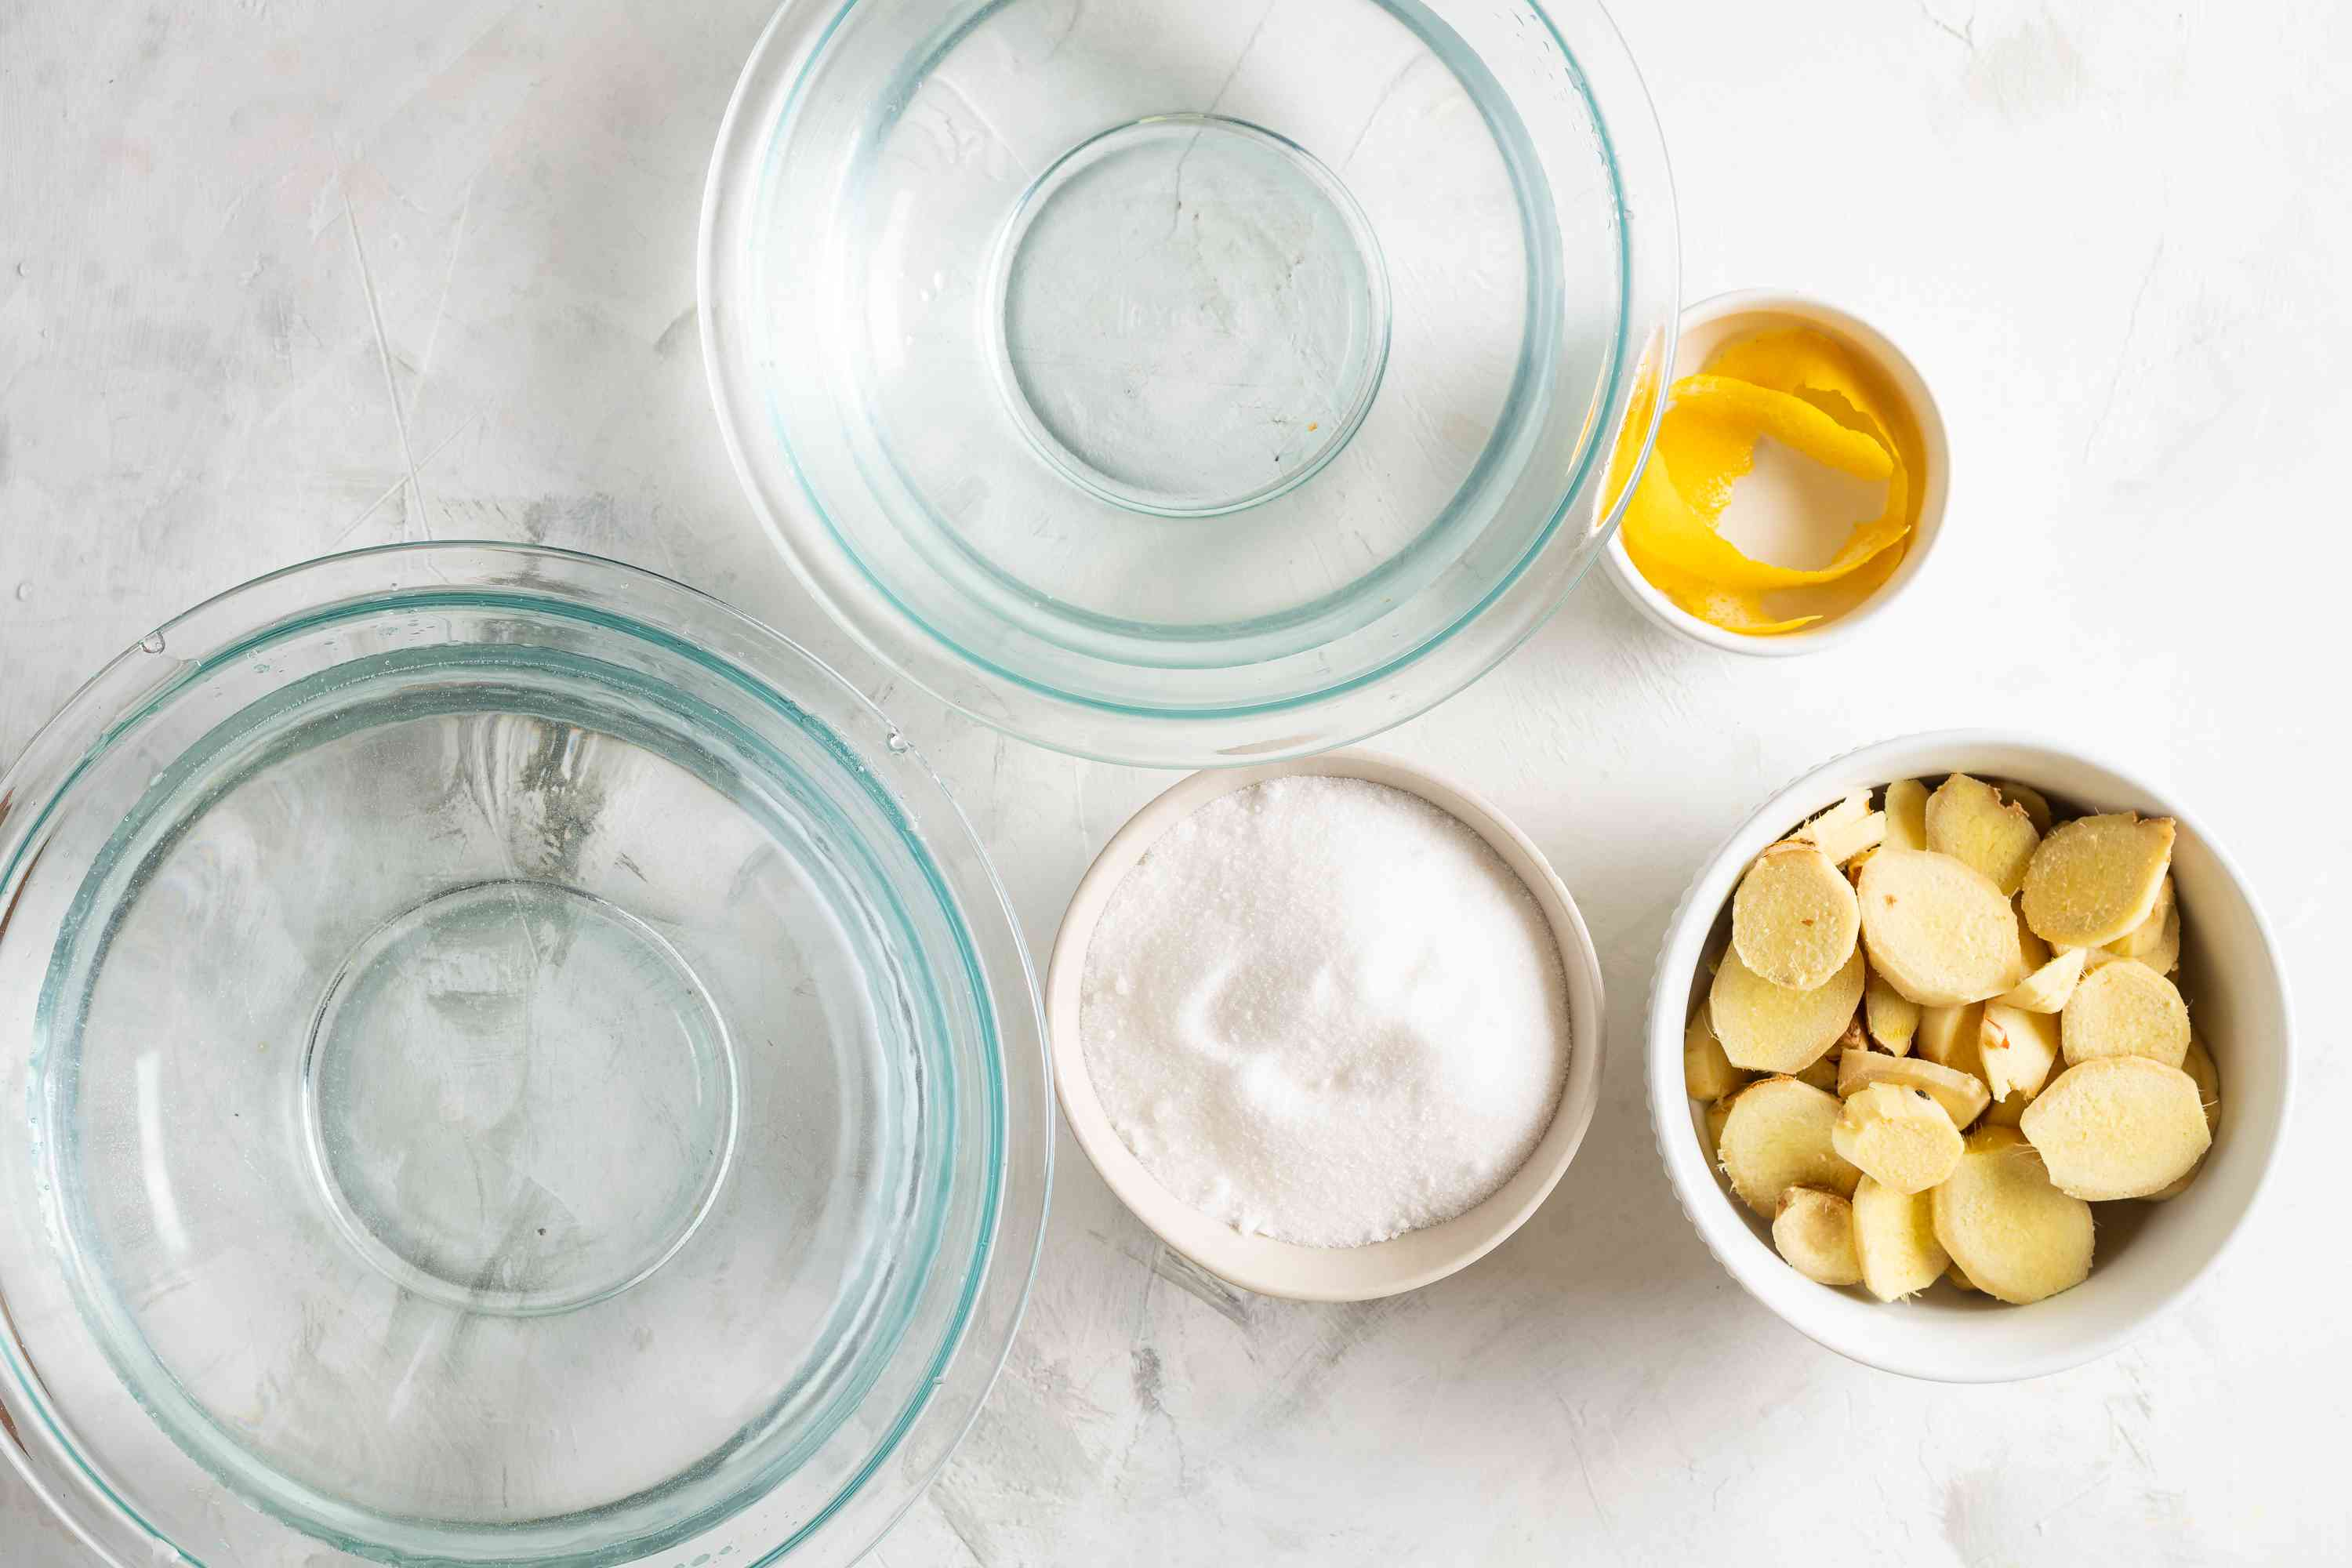 Homemade Fresh Ginger Ale ingredients